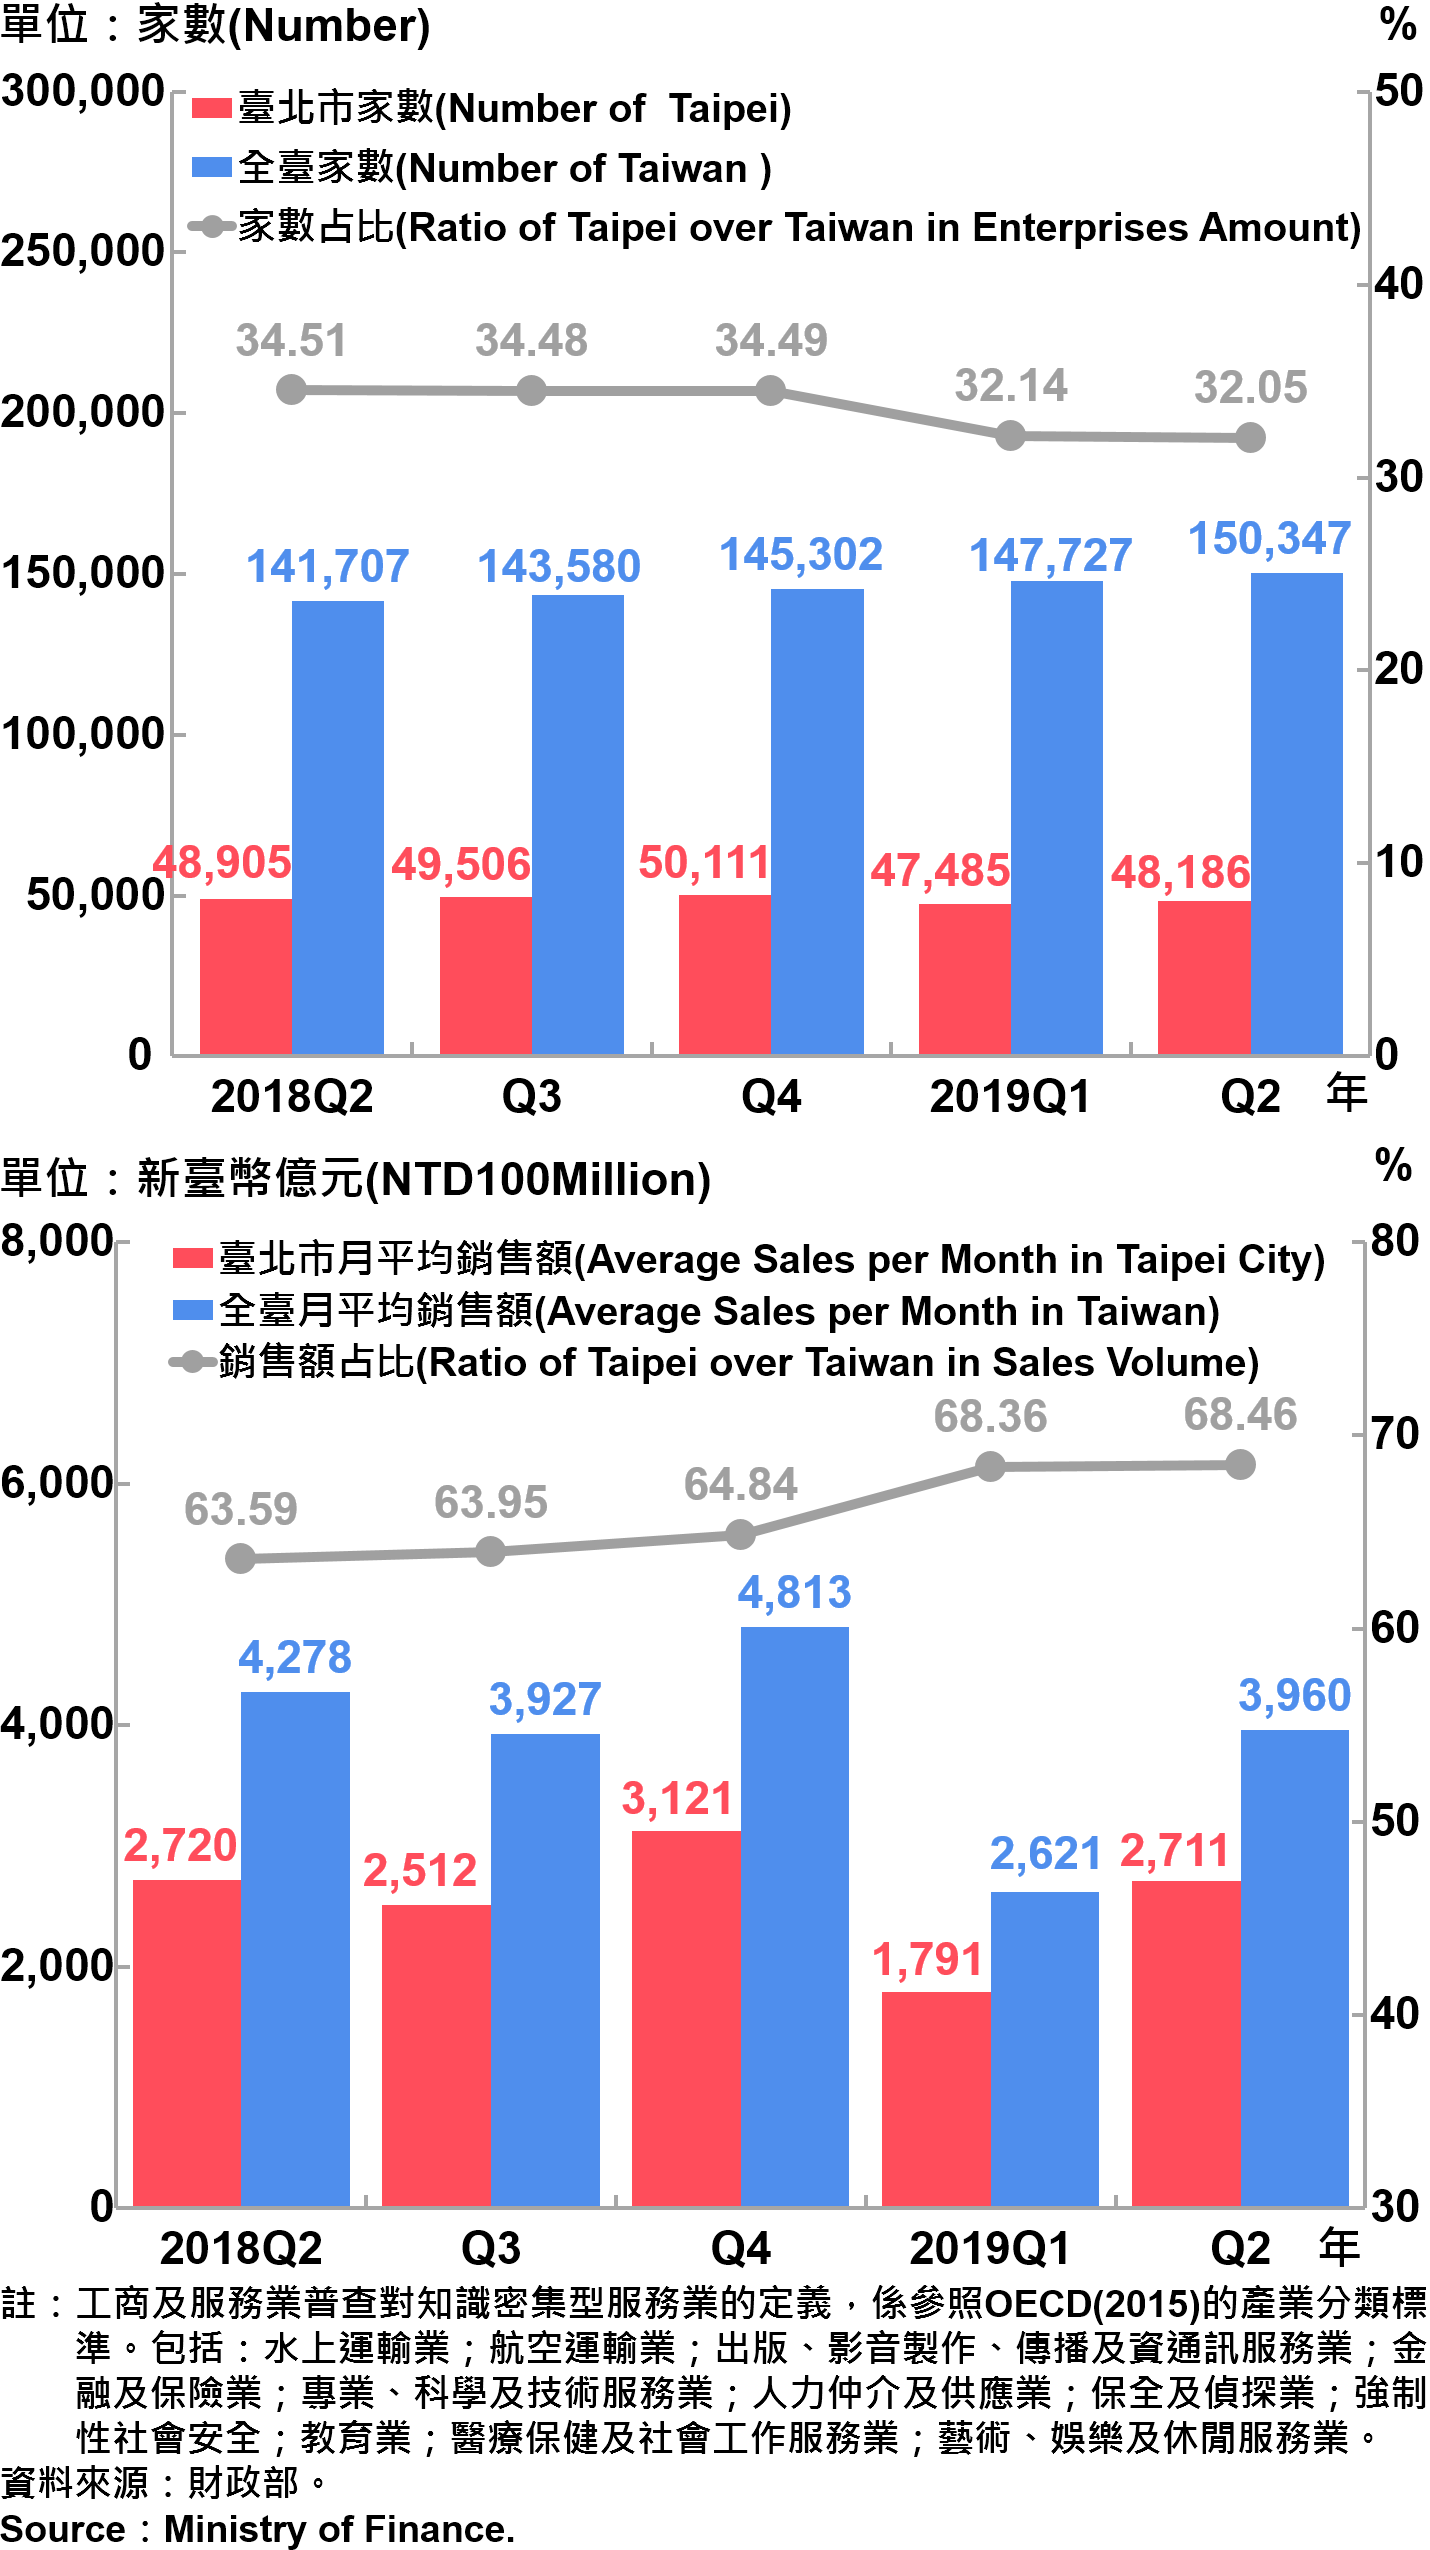 臺北市知識密集型服務業之家數及銷售額—2019Q2 Number and Sales of Knowledge Intensive Service Industry in Taipei City—2019Q2